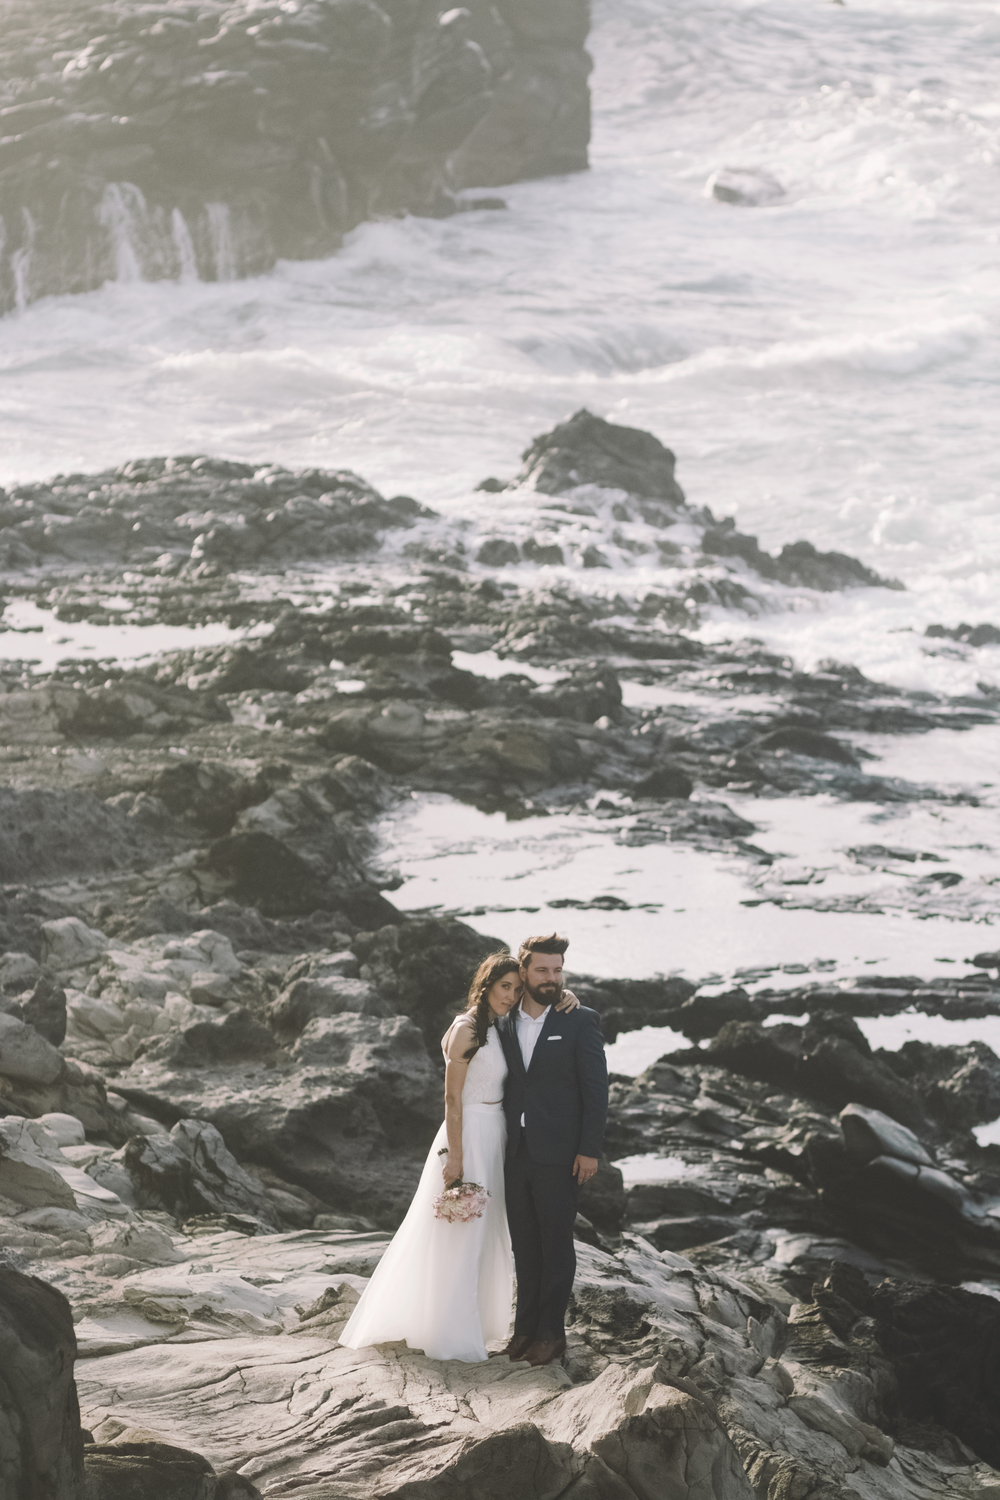 angie-diaz-photography-maui-wedding-ironwoods-beach-58.jpg